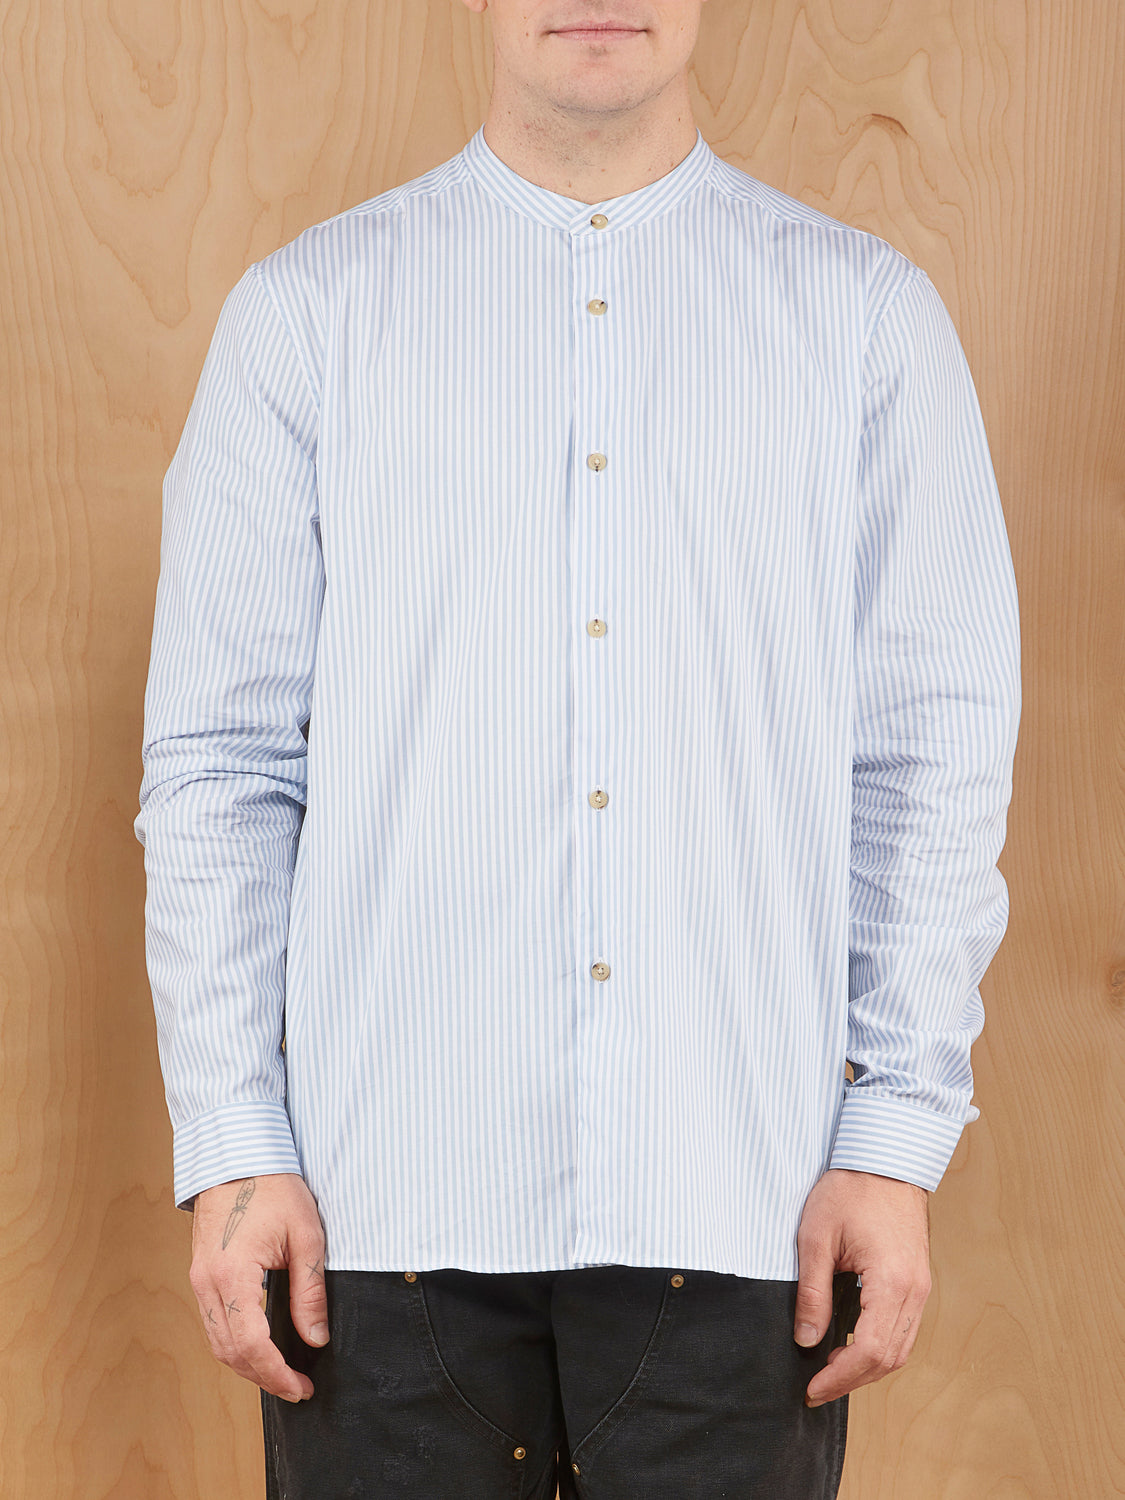 Acne Studios Striped Button Up